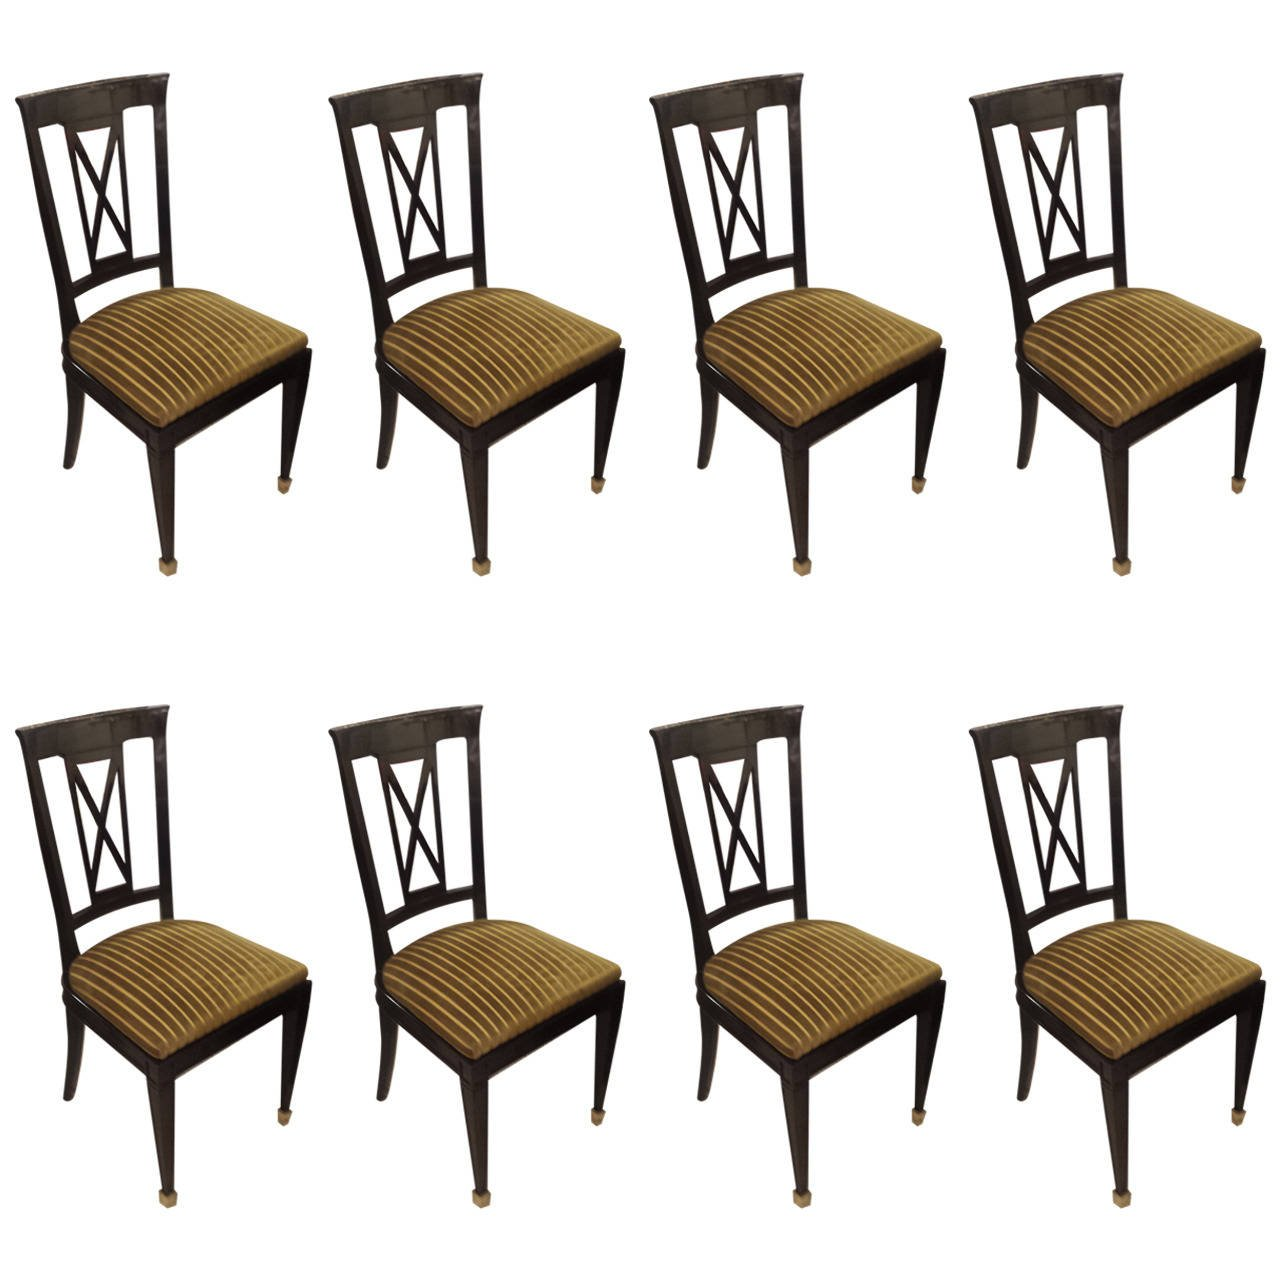 Super Set Of Eight Ebonized Dining Chairs In The Directoire Manner Pabps2019 Chair Design Images Pabps2019Com